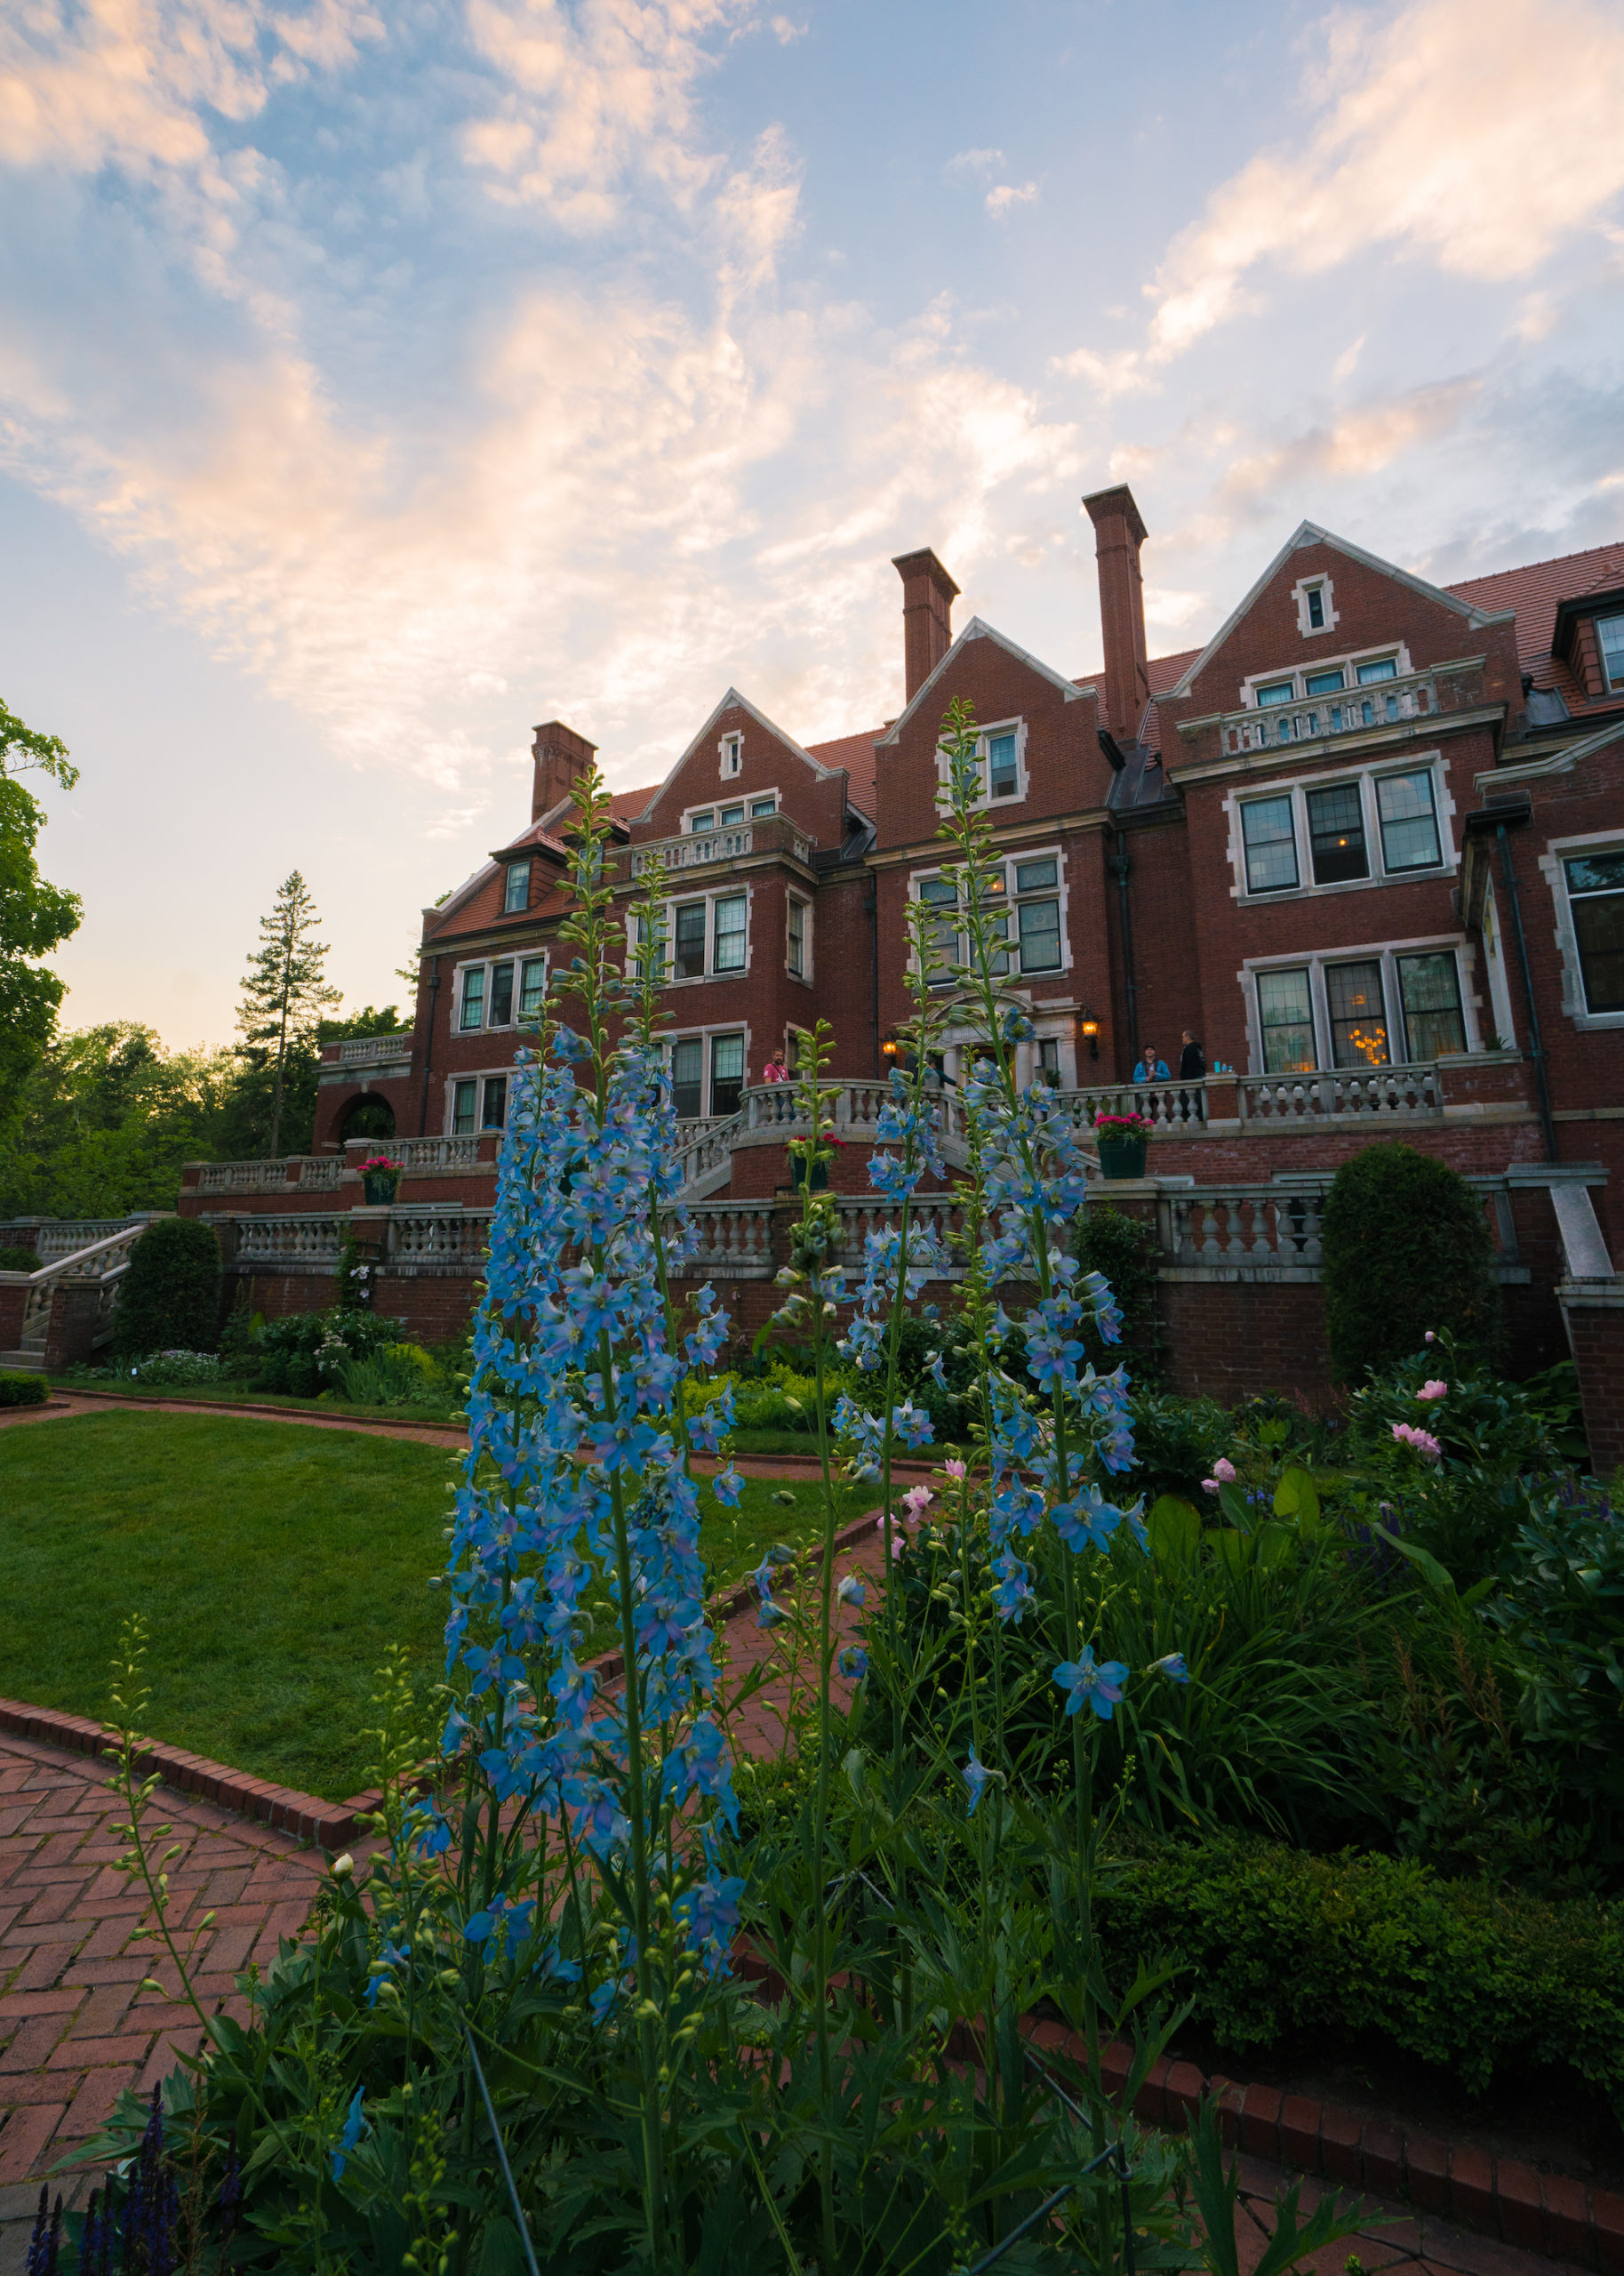 Blue flowers with Glensheen in the background